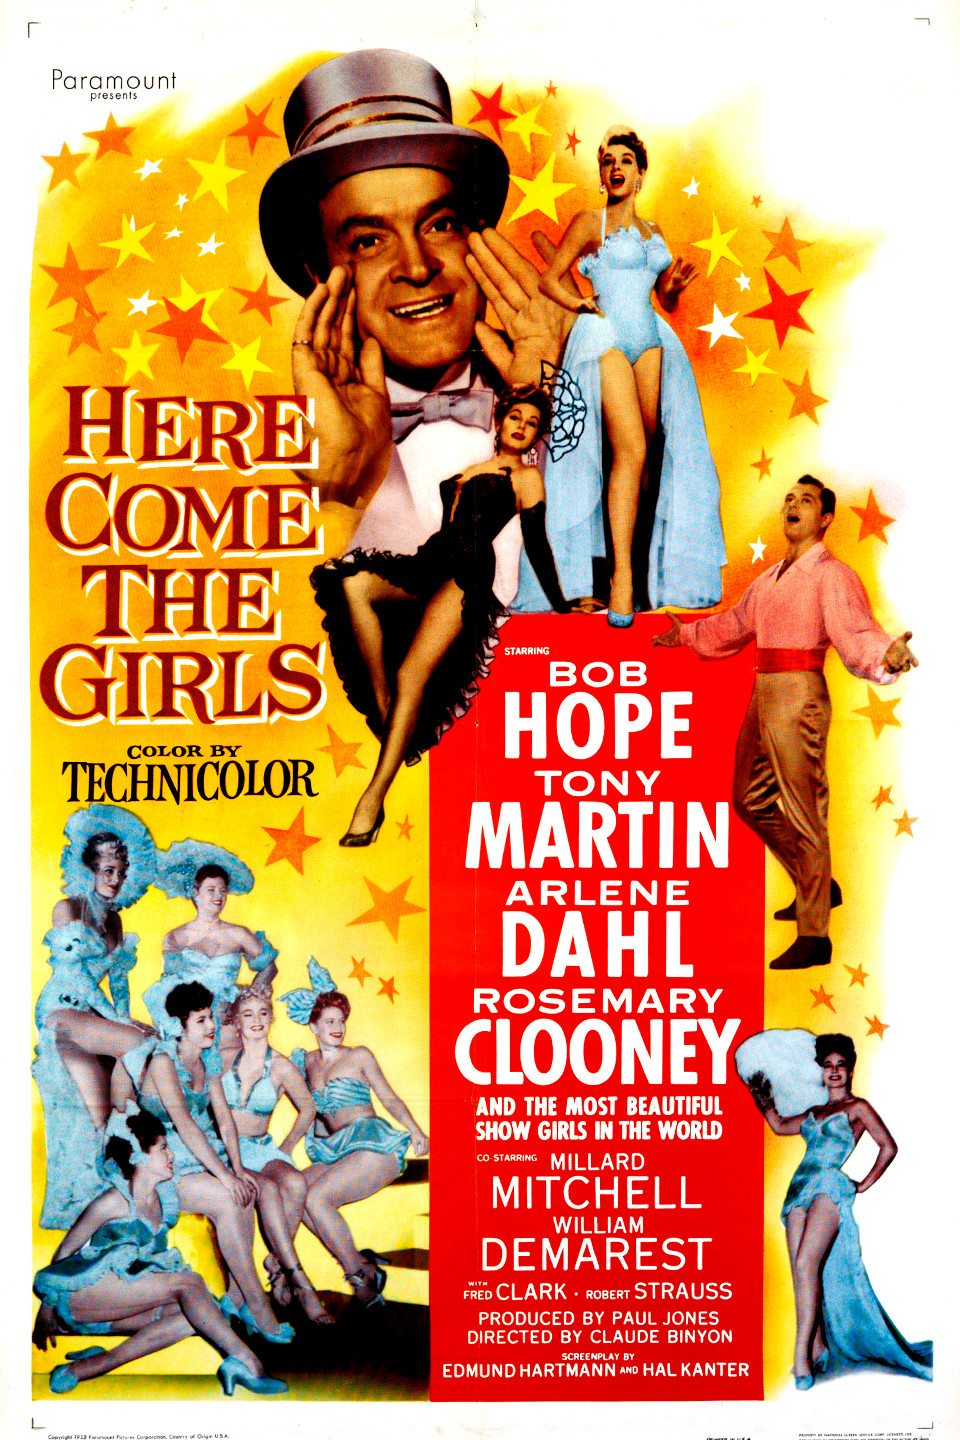 Here Come the Girls (1953 film) wwwgstaticcomtvthumbmovieposters36825p36825